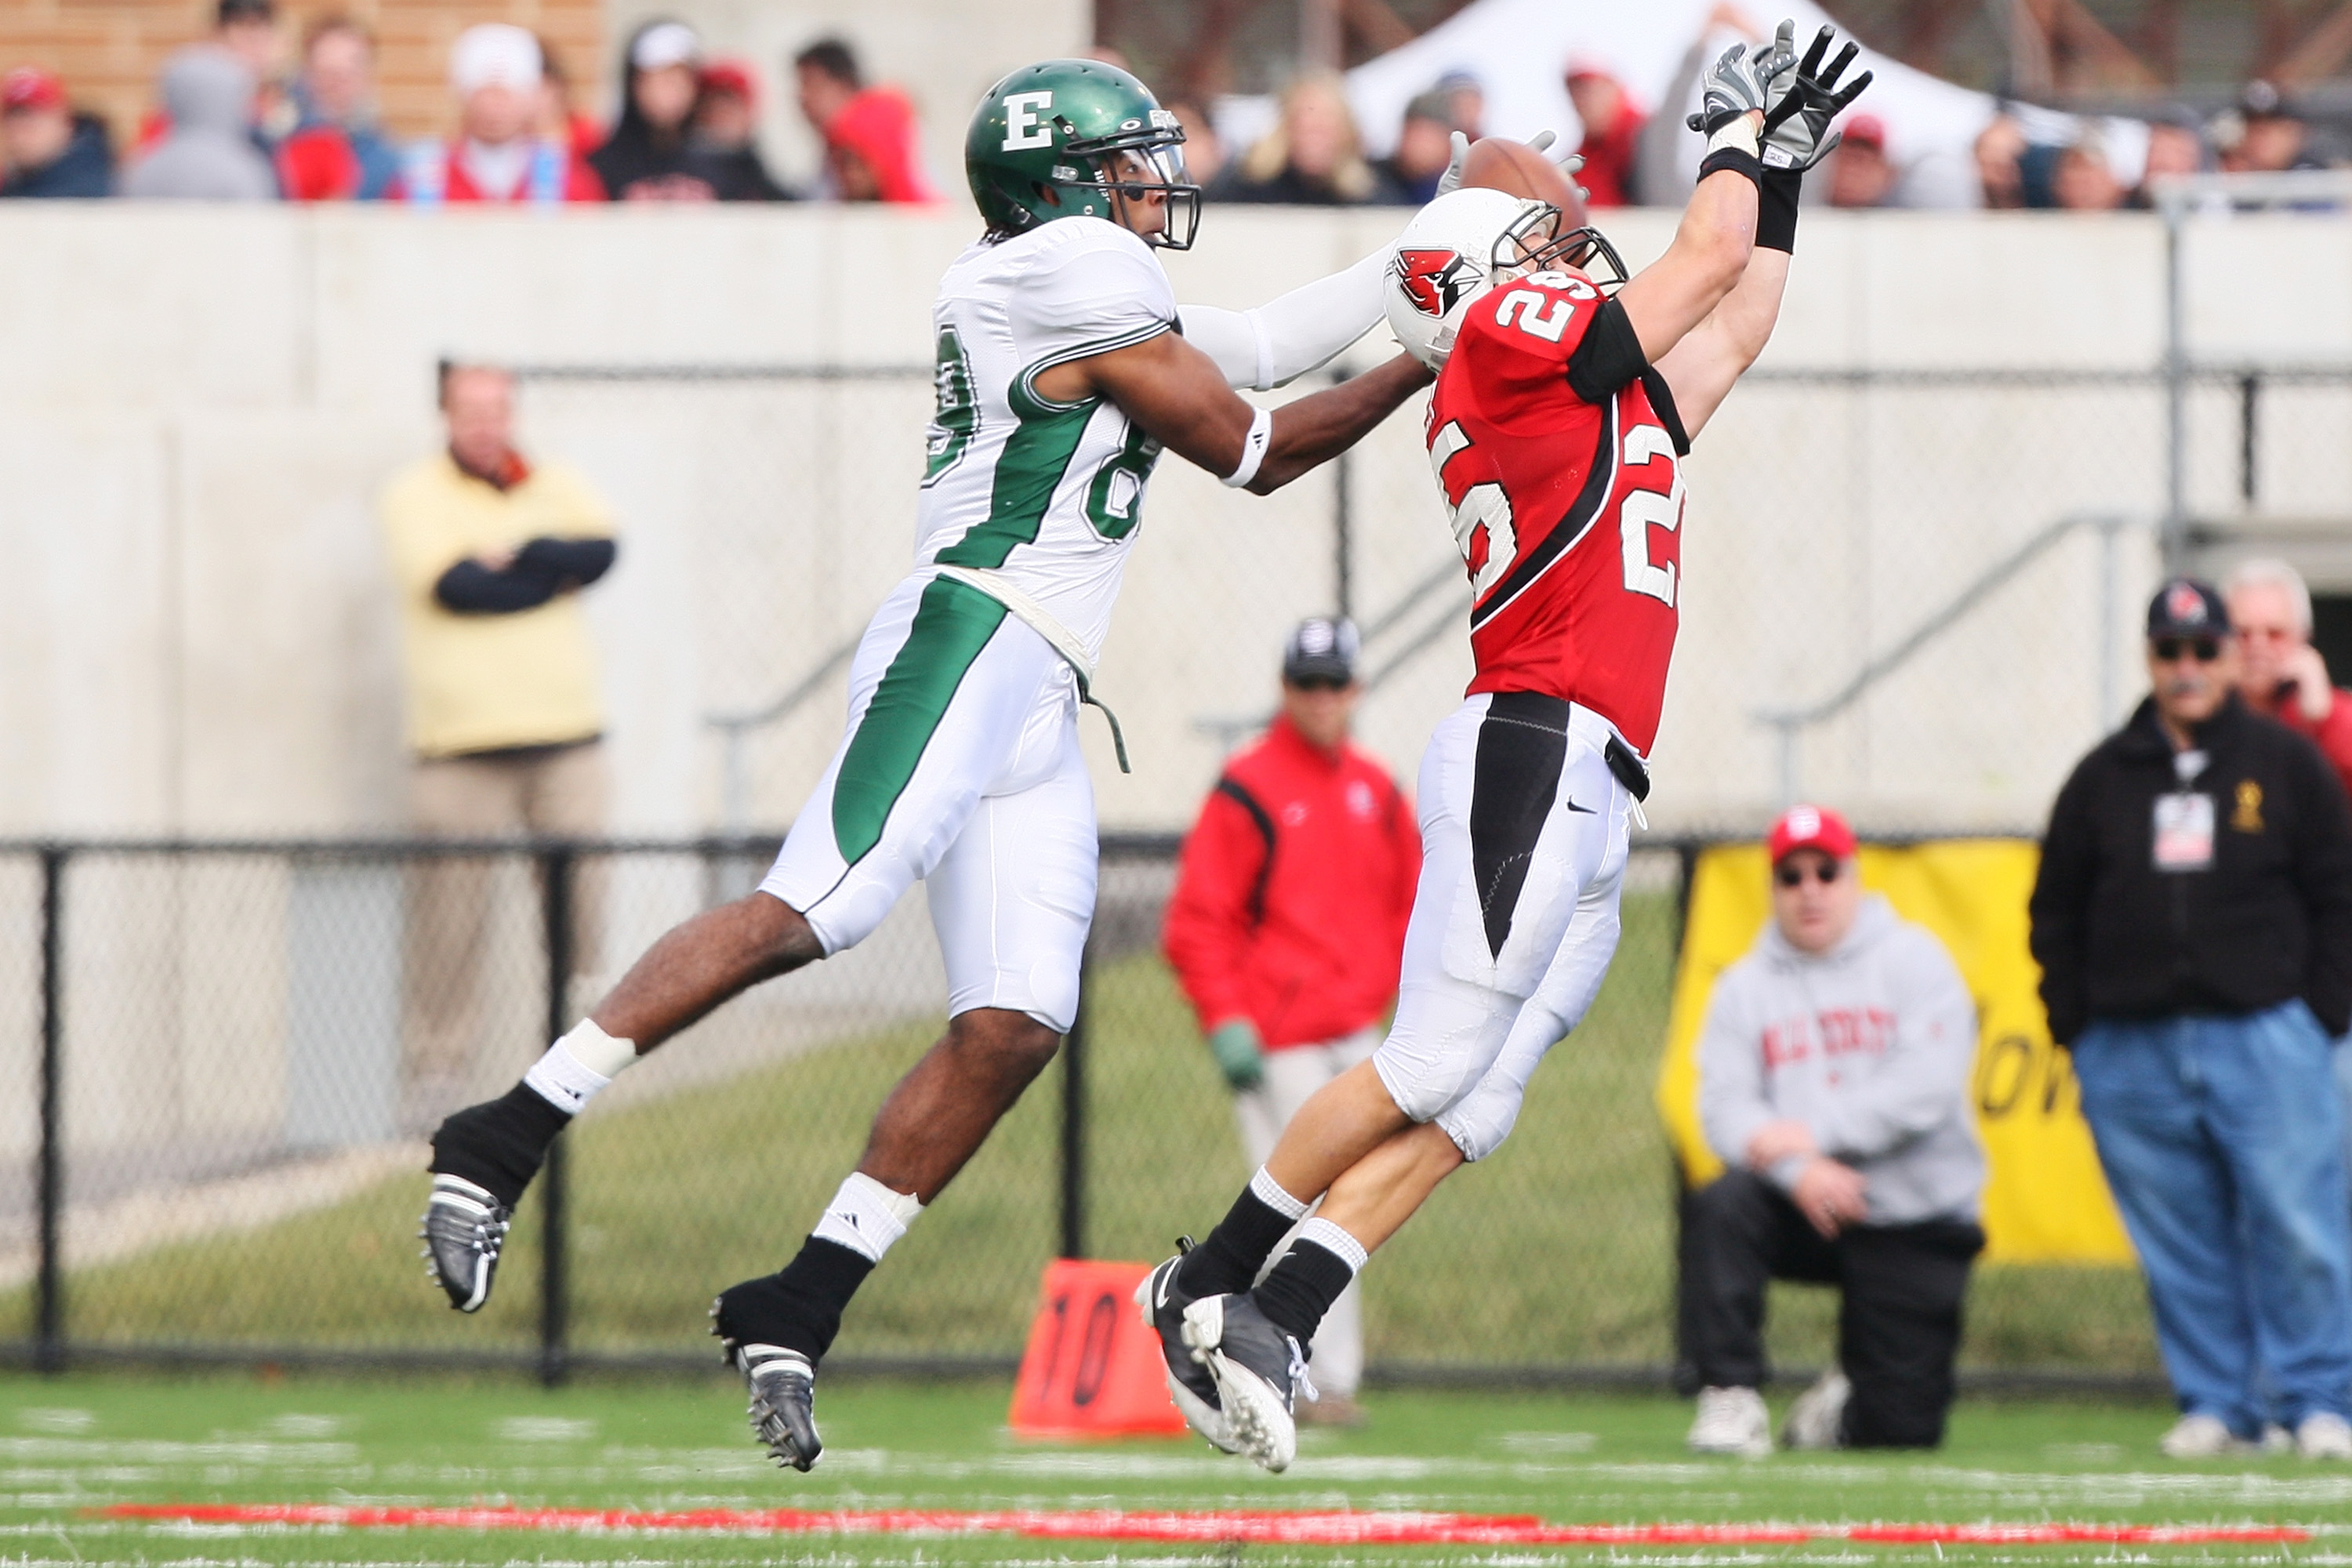 MUNCIE, IN - OCTOBER 25: Wide receiver Josh LeDuc #89 of the Eastern Michigan Eagles snares a pass reception from defensive back Sean Baker #25 of the Ball State Cardinals on October 25, 2008 at Scheumann Stadium in Muncie, Indiana.  (Photo by Jamie Sabau